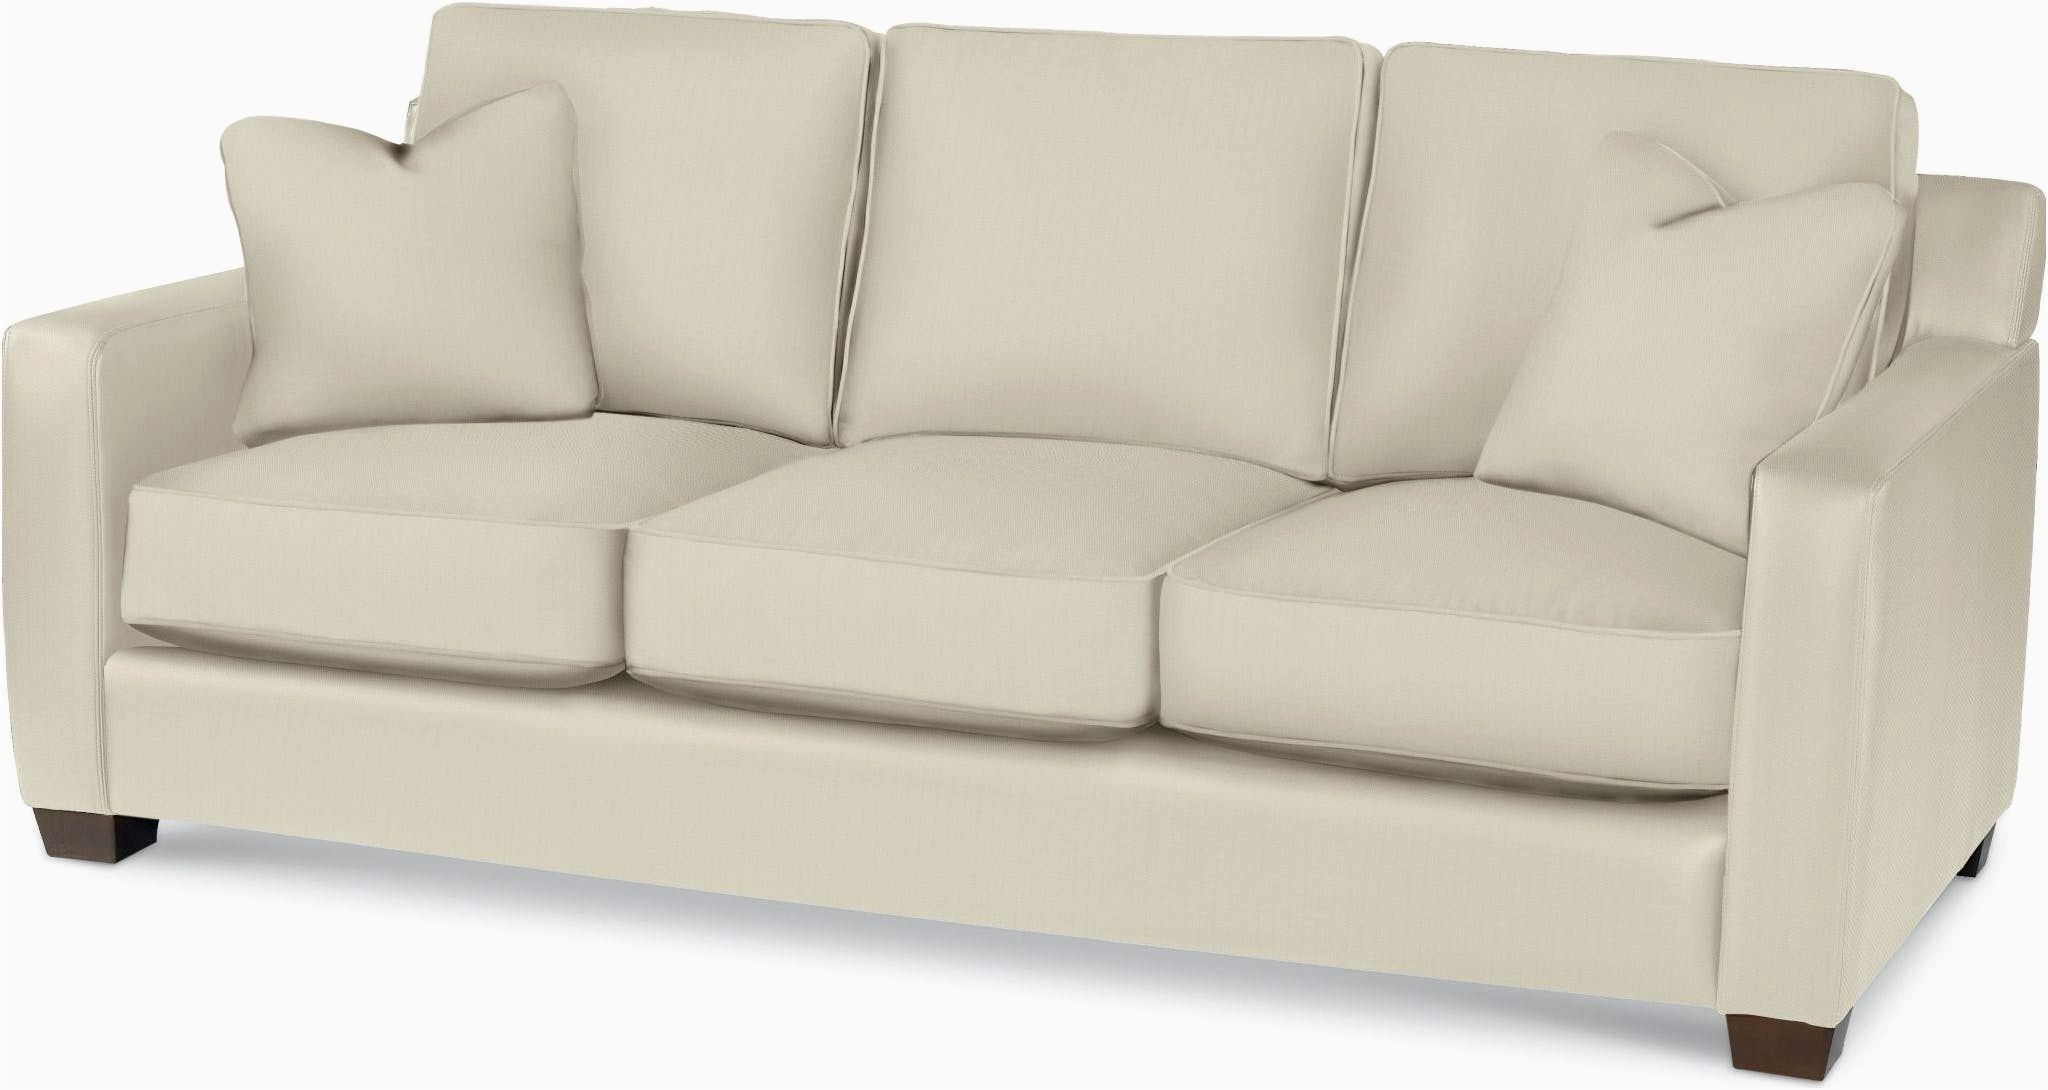 top extra deep sofa inspiration-Stylish Extra Deep sofa Ideas